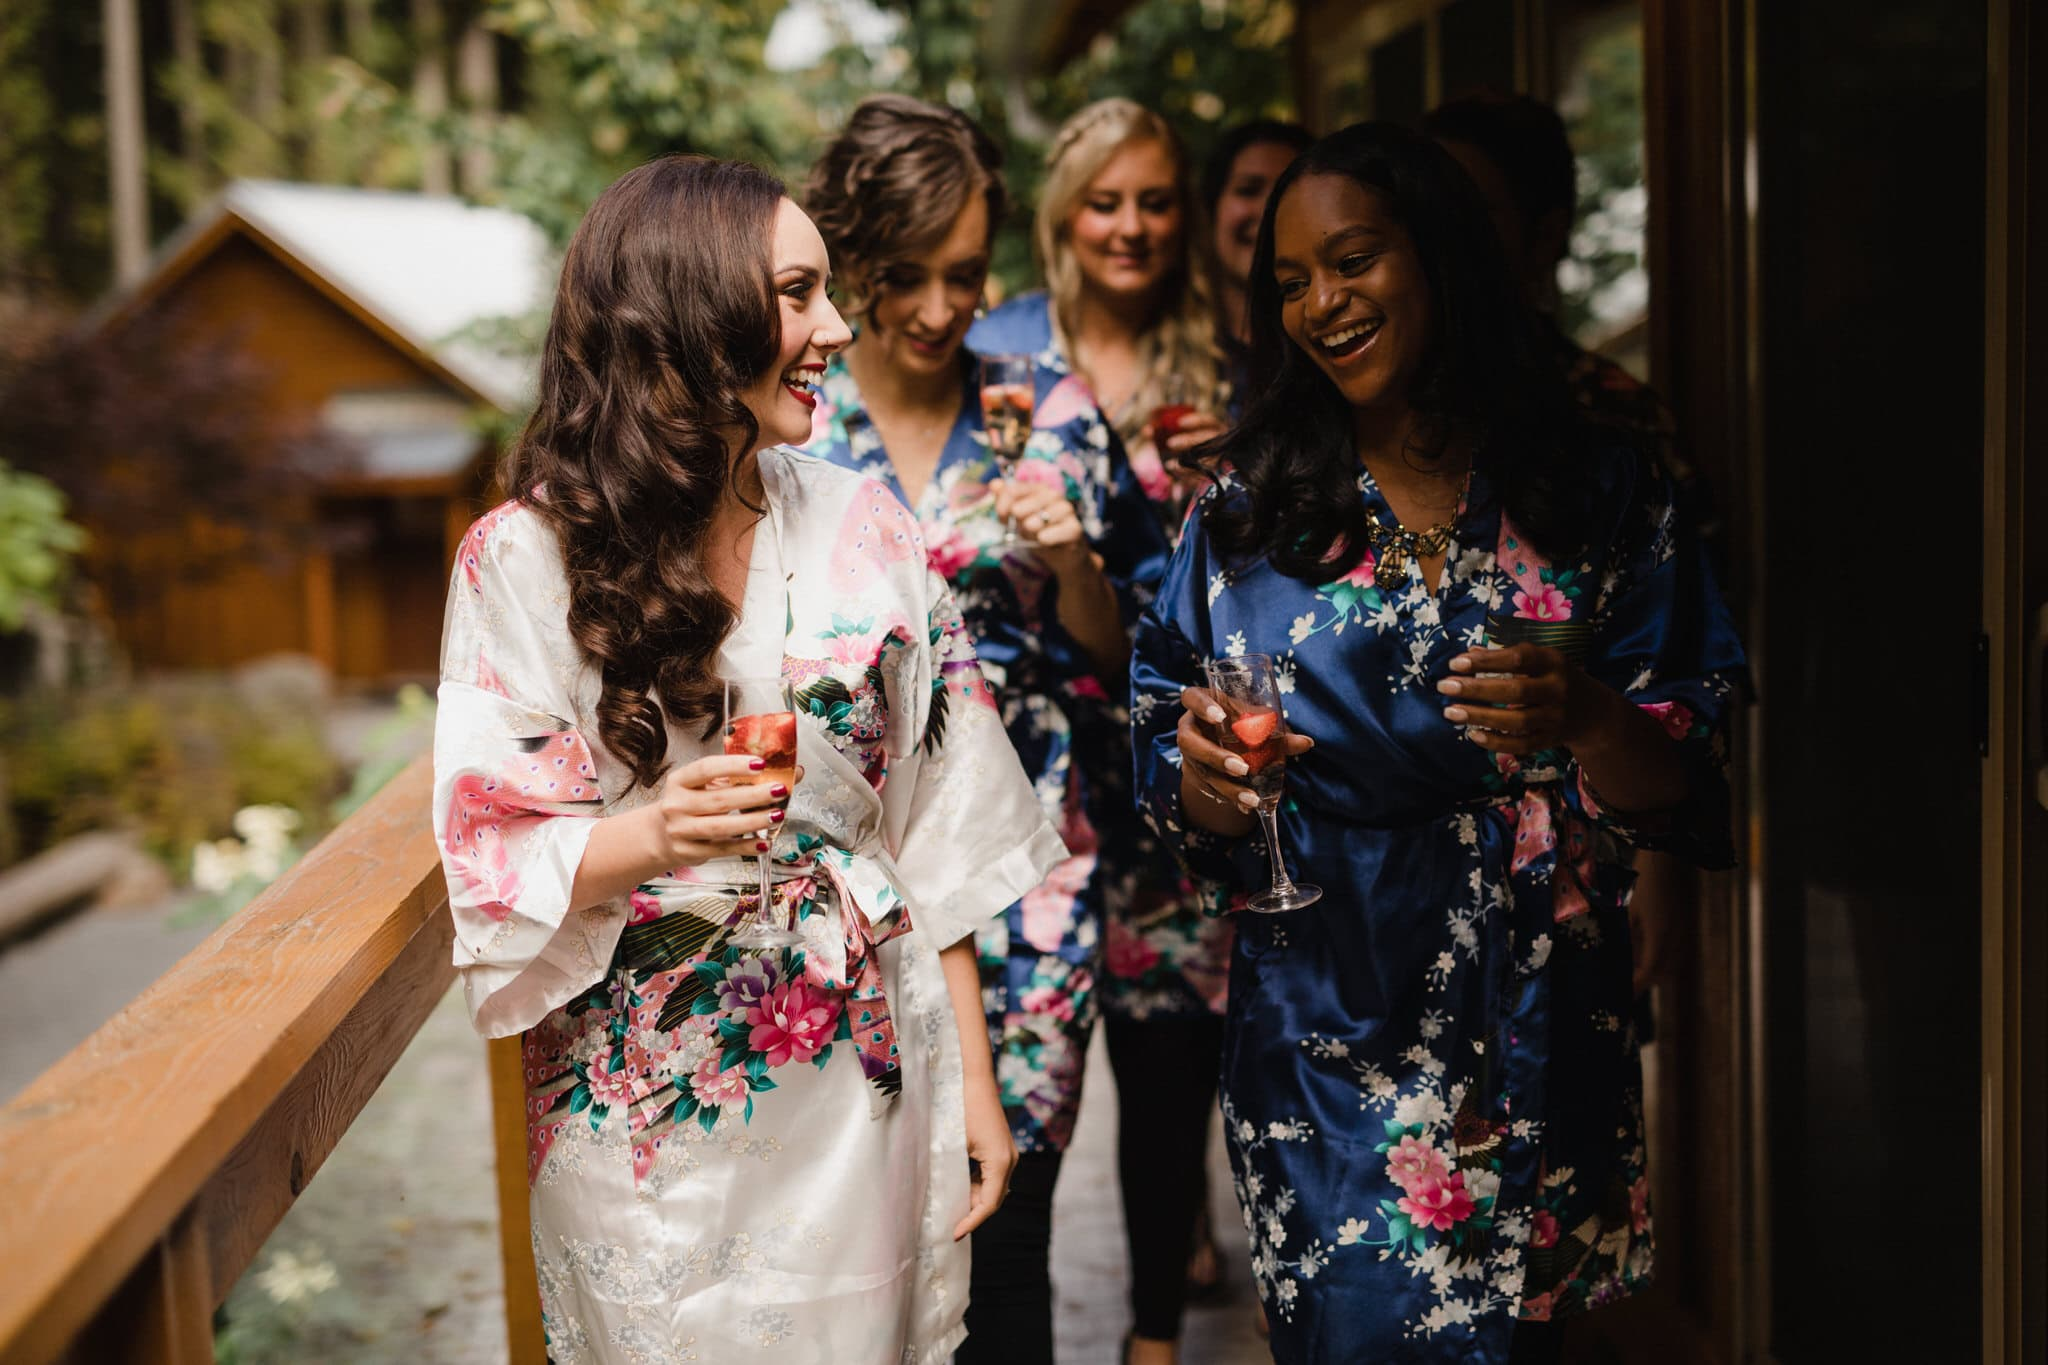 Bridal party in kimonos with champagne before forest wedding at The Brew Creek Centre in Whistler. Destination wedding photographer Brent Calis.